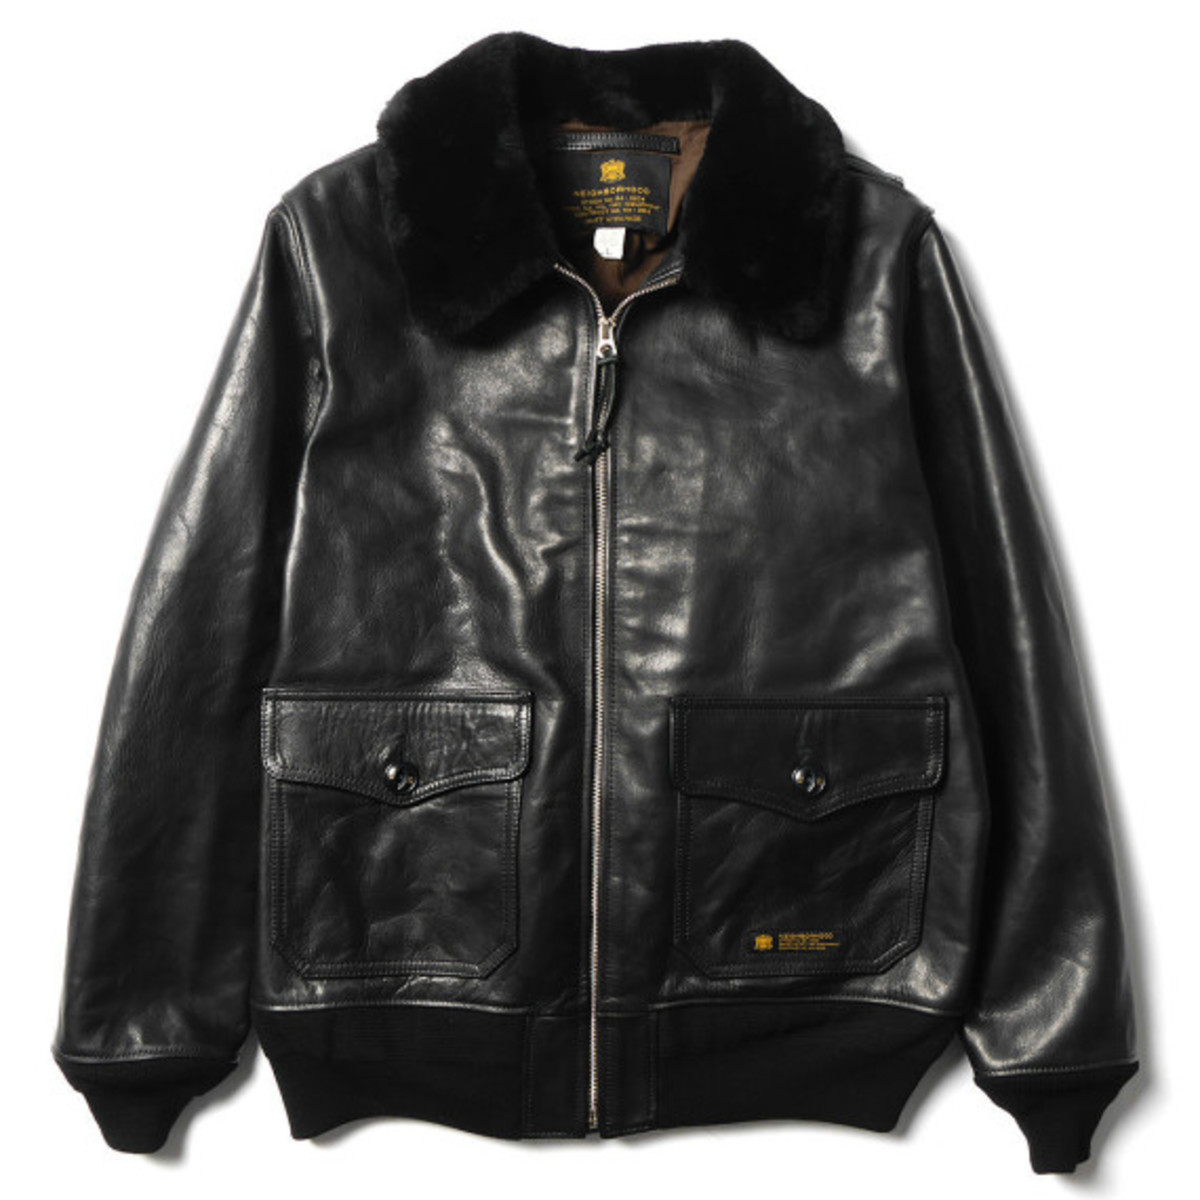 neighborhood-g-1-flight-jacket-02